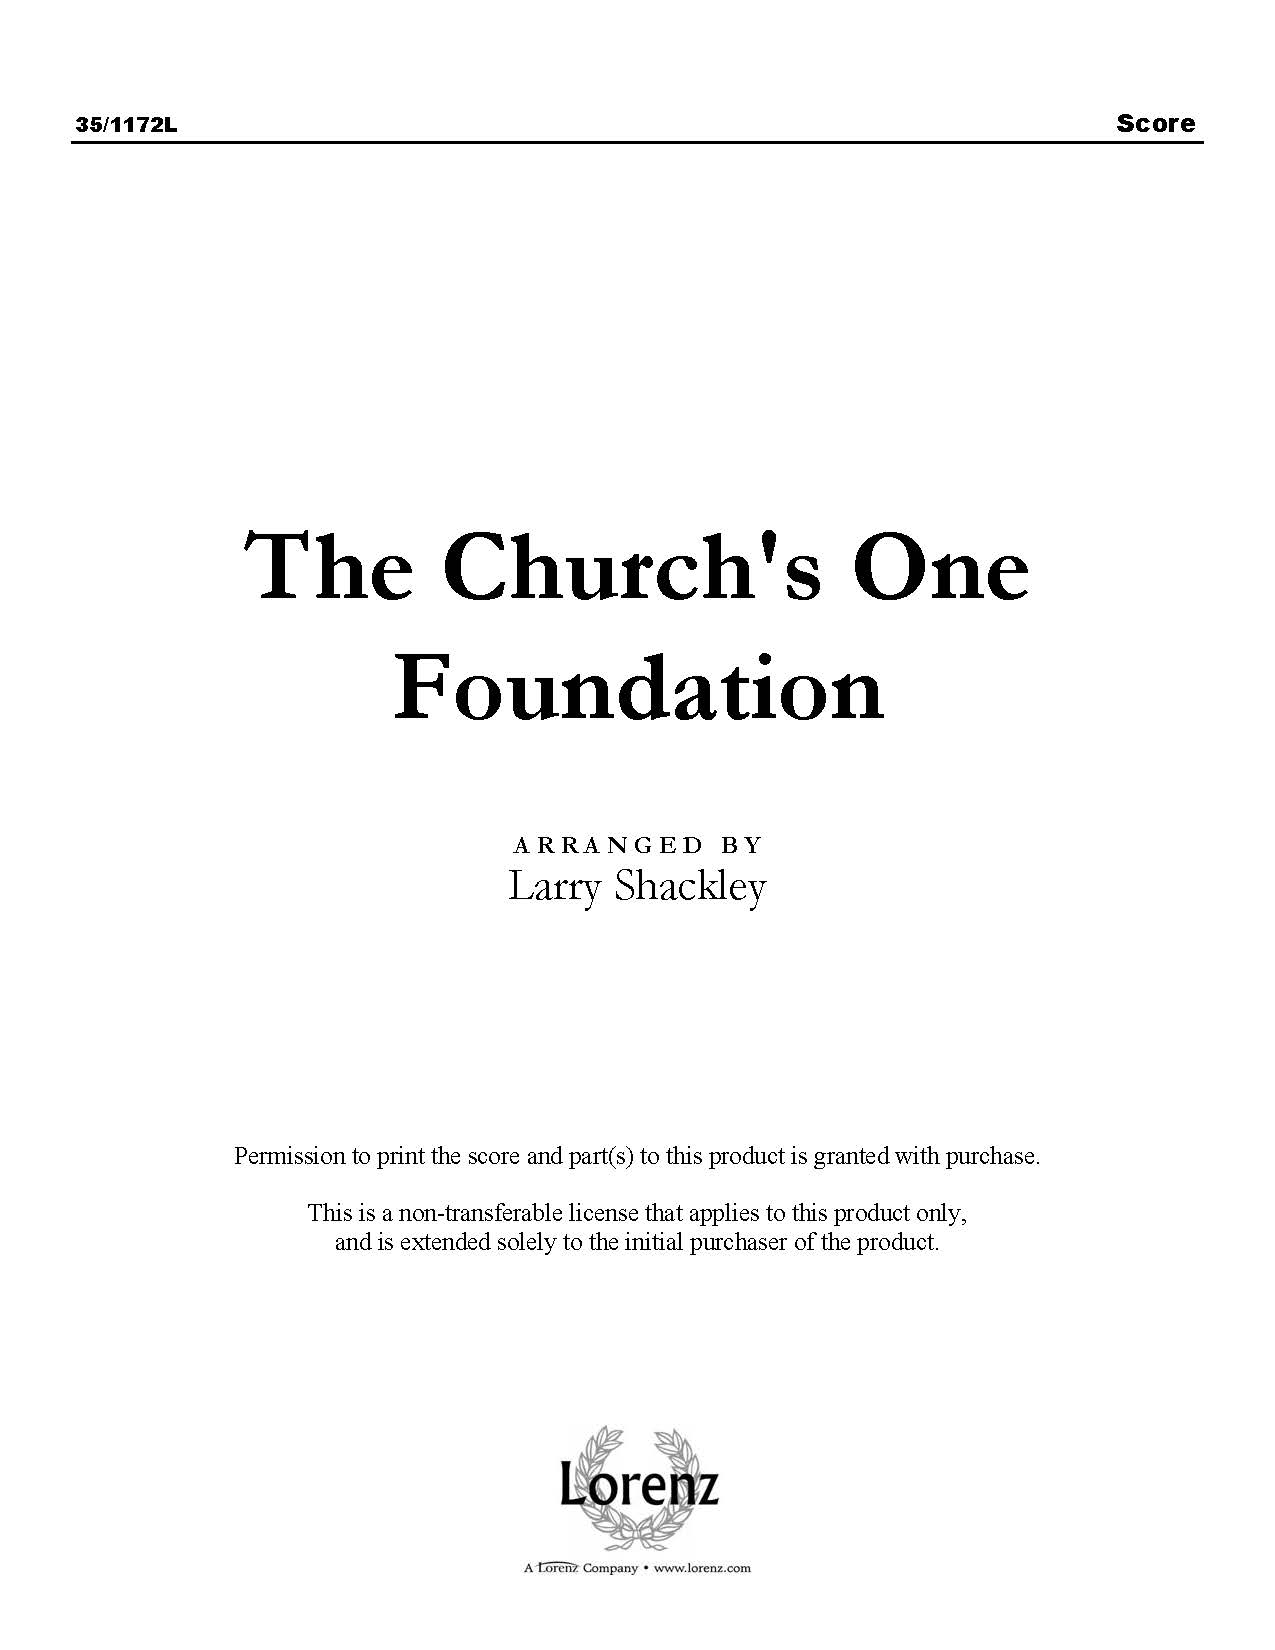 The Church's One Foundation (Digital Delivery)